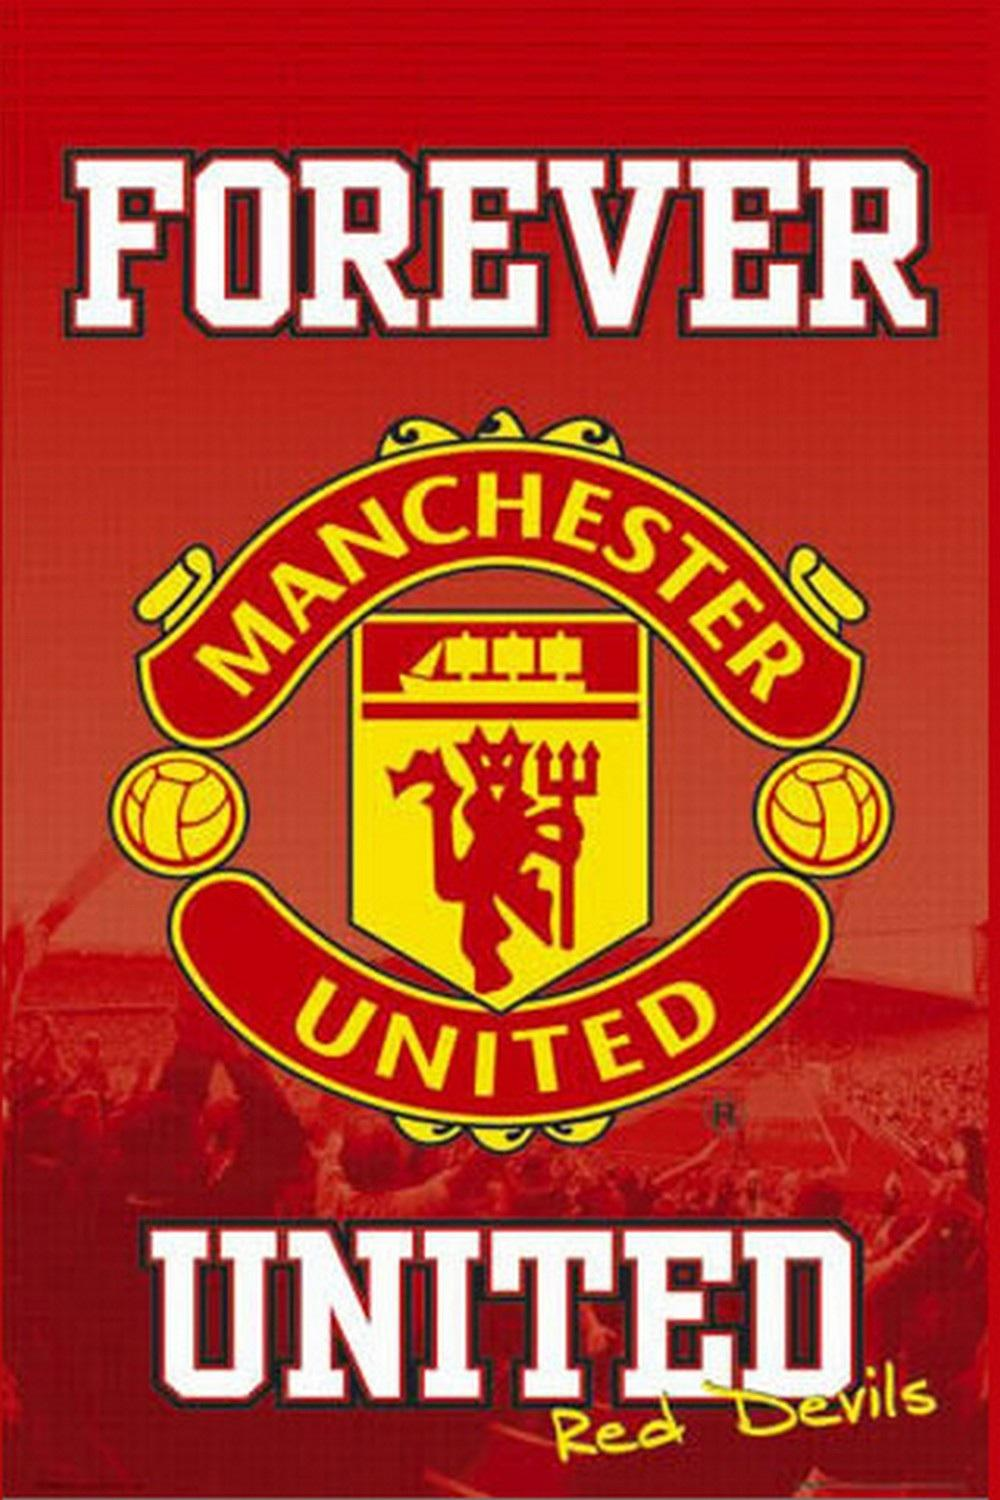 Free Download Manchester United Iphone Wallpaper Photo